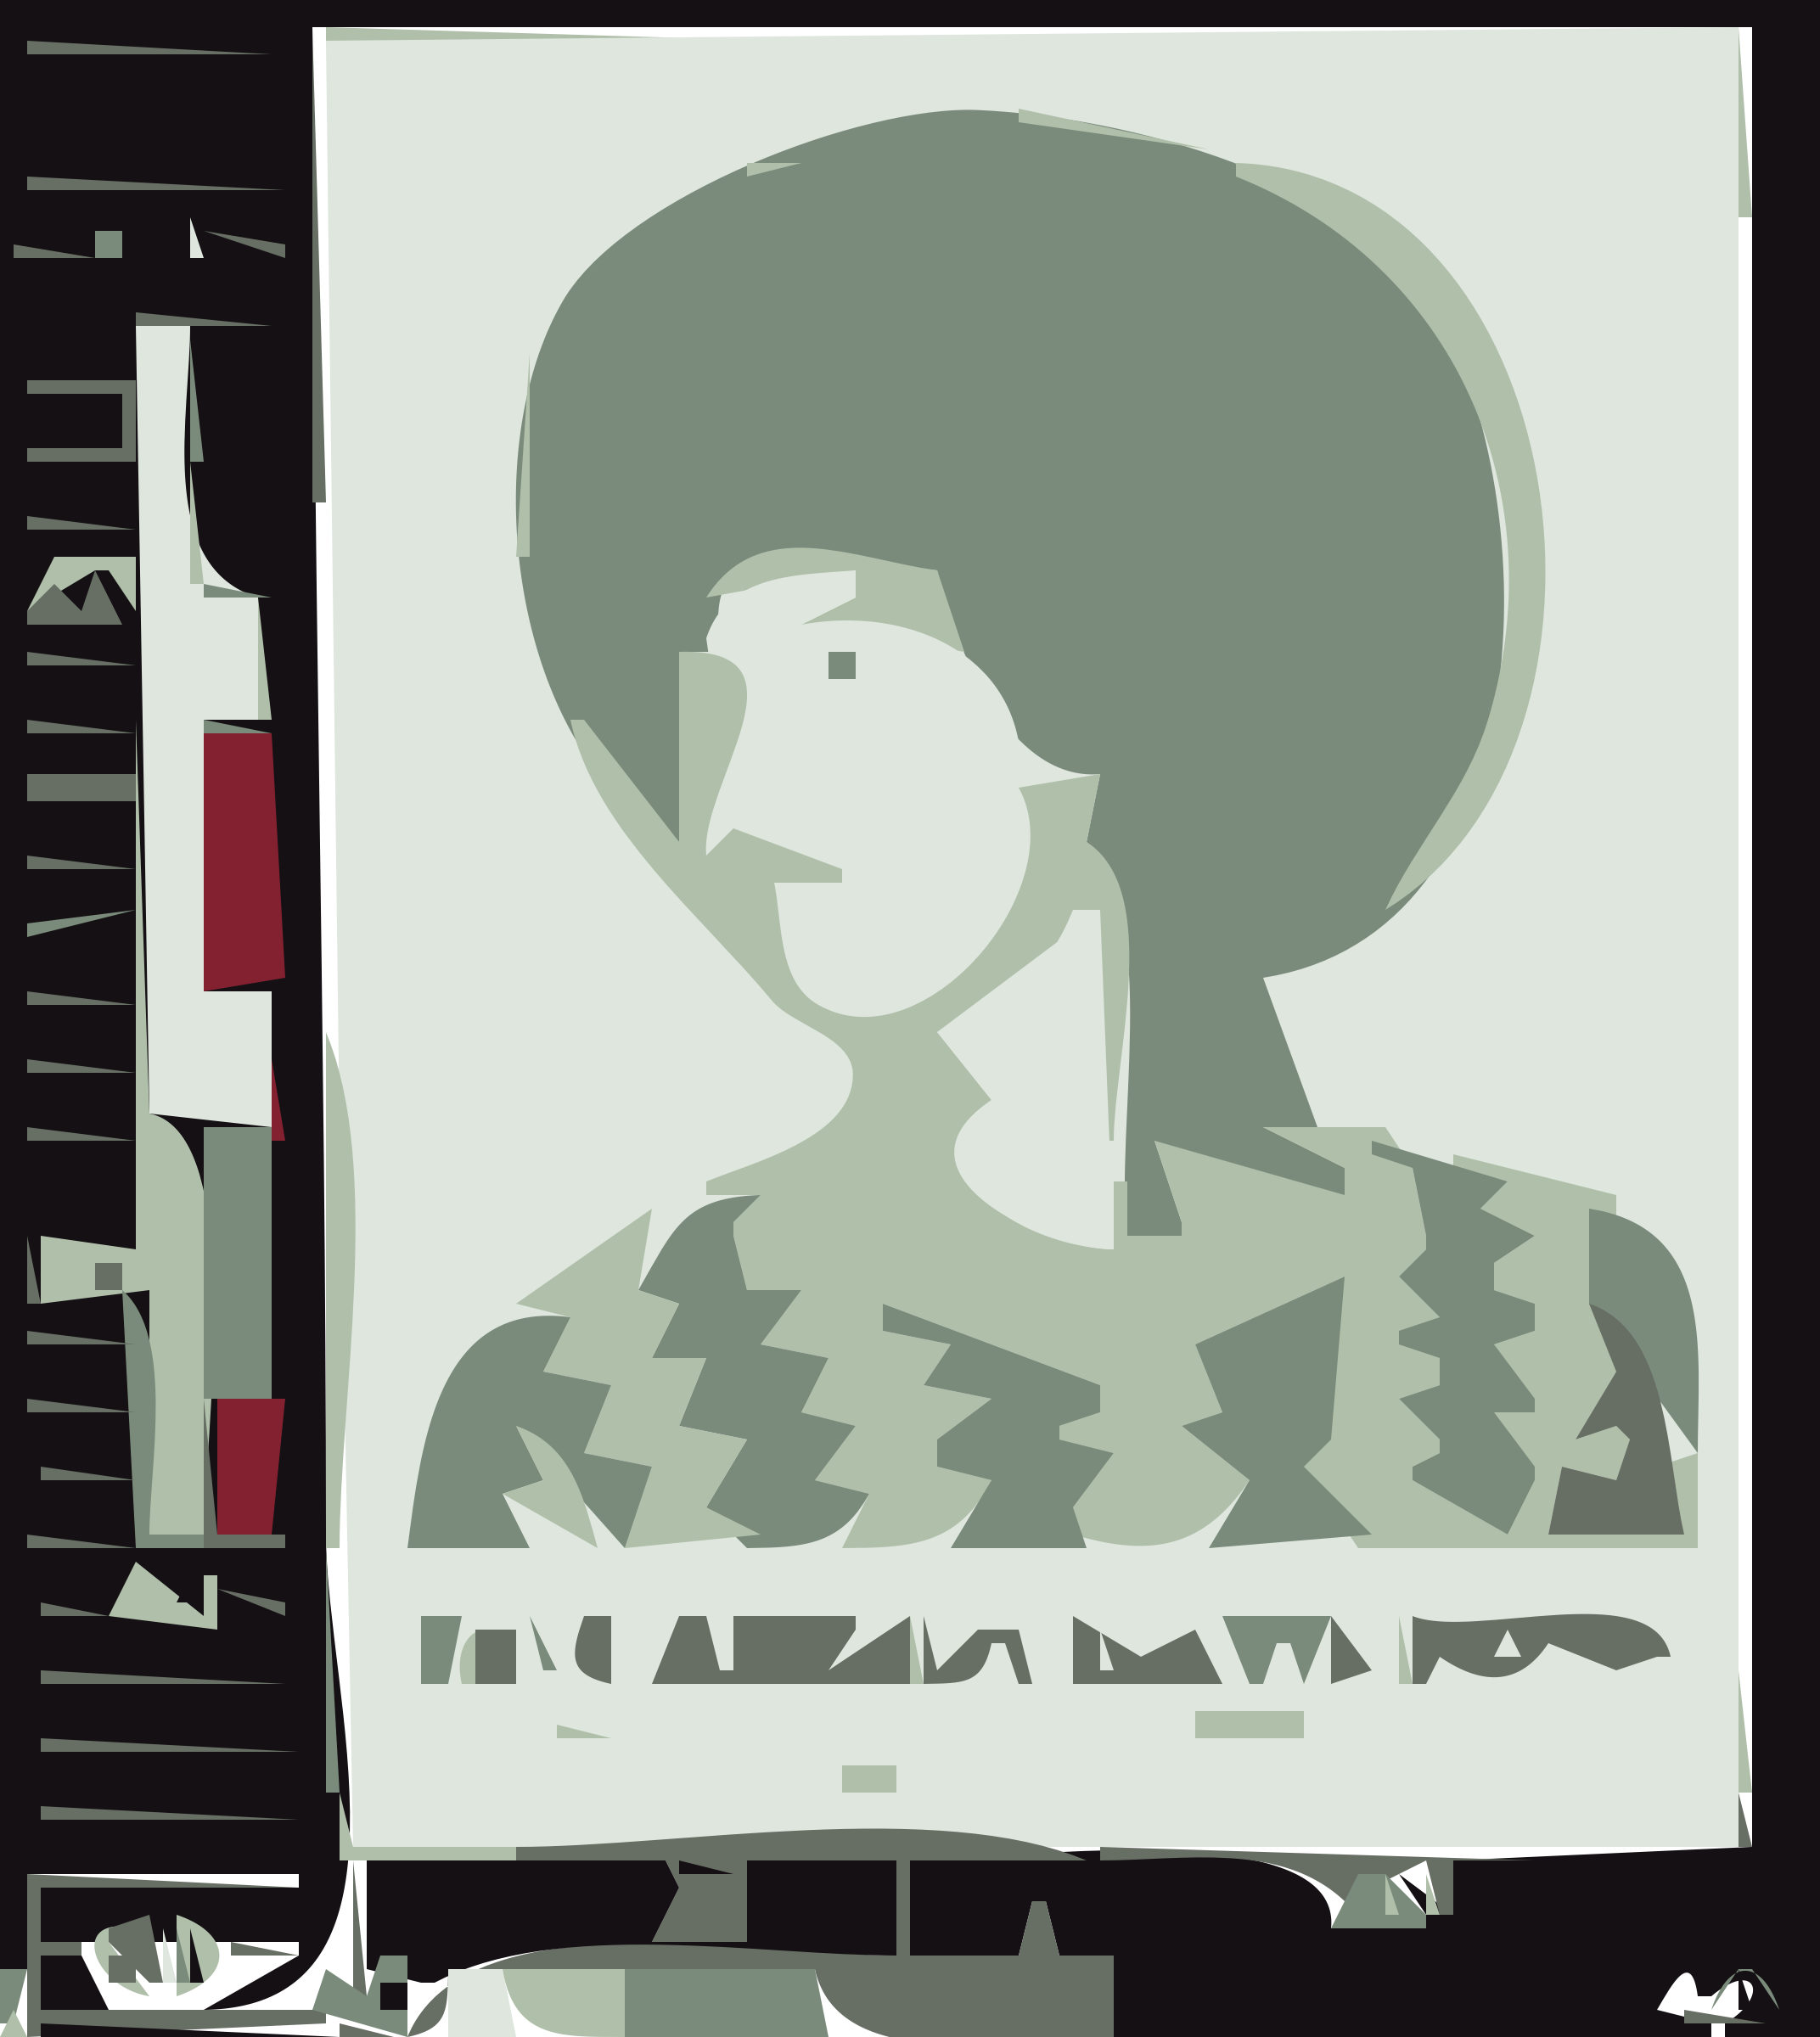 Free ANGELA DAVIS now by worldlabel